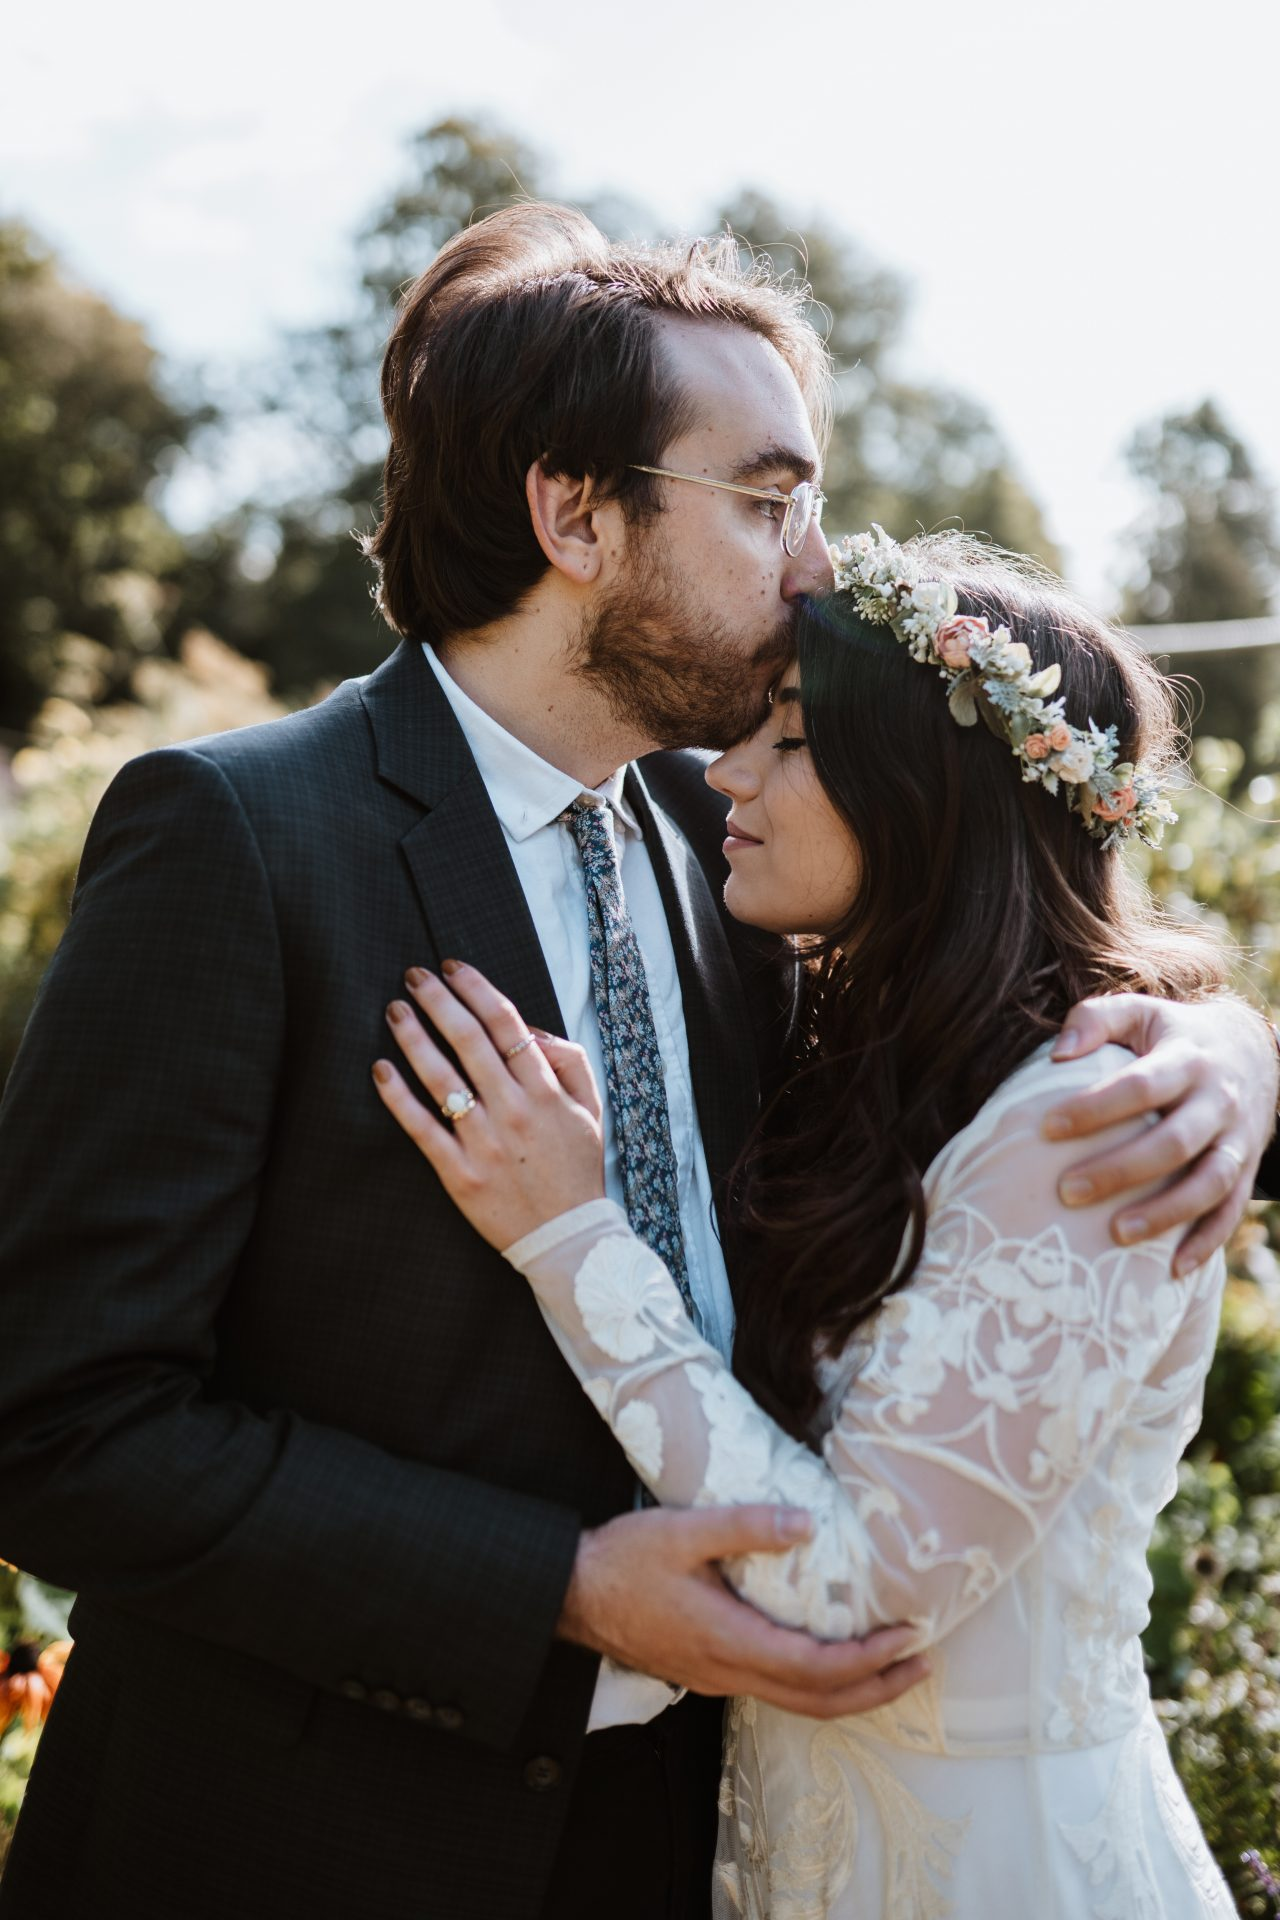 groom kisses bride's forehead with floral crown